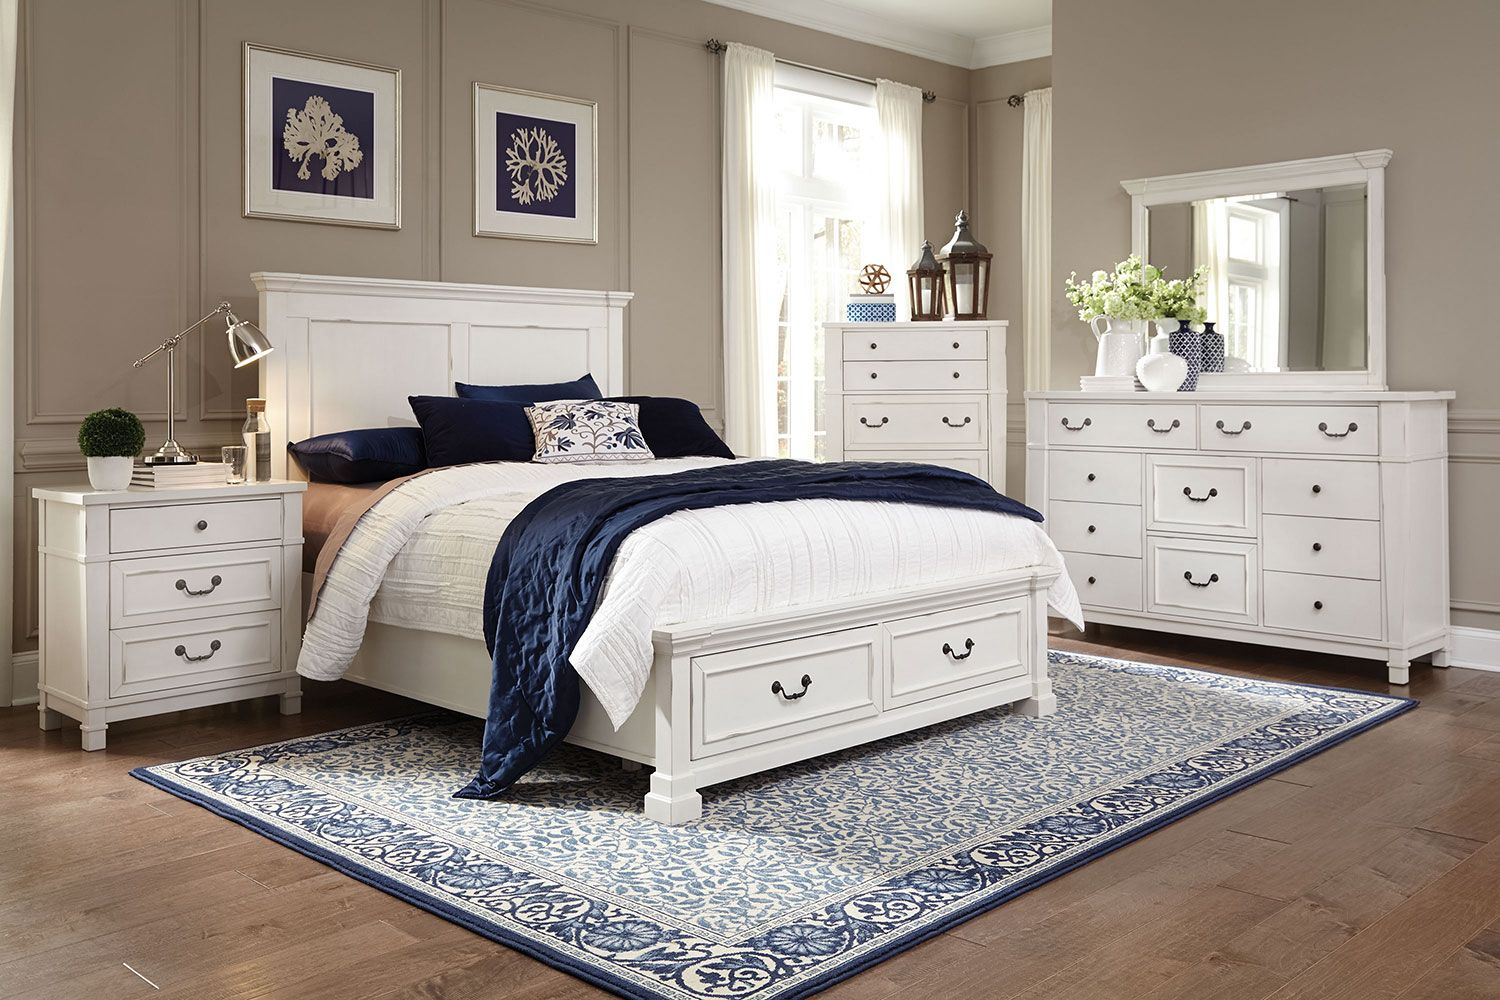 shop at levin's for a wide selection of furniture and